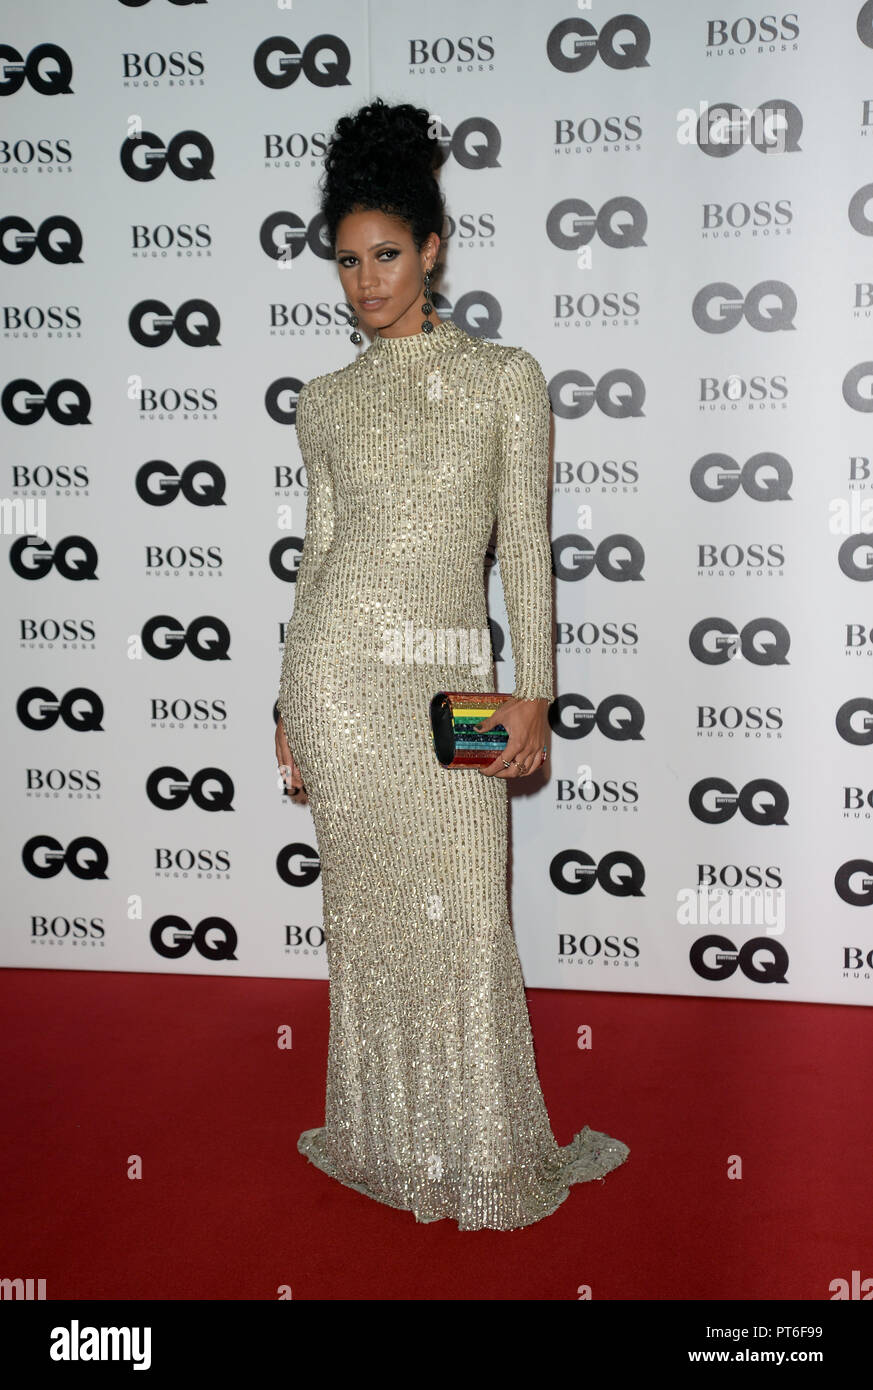 GQ Men Of The Year Awards  Featuring: Vick Hope Where: London, United Kingdom When: 05 Sep 2018 Credit: Tony Oudot/WENN - Stock Image